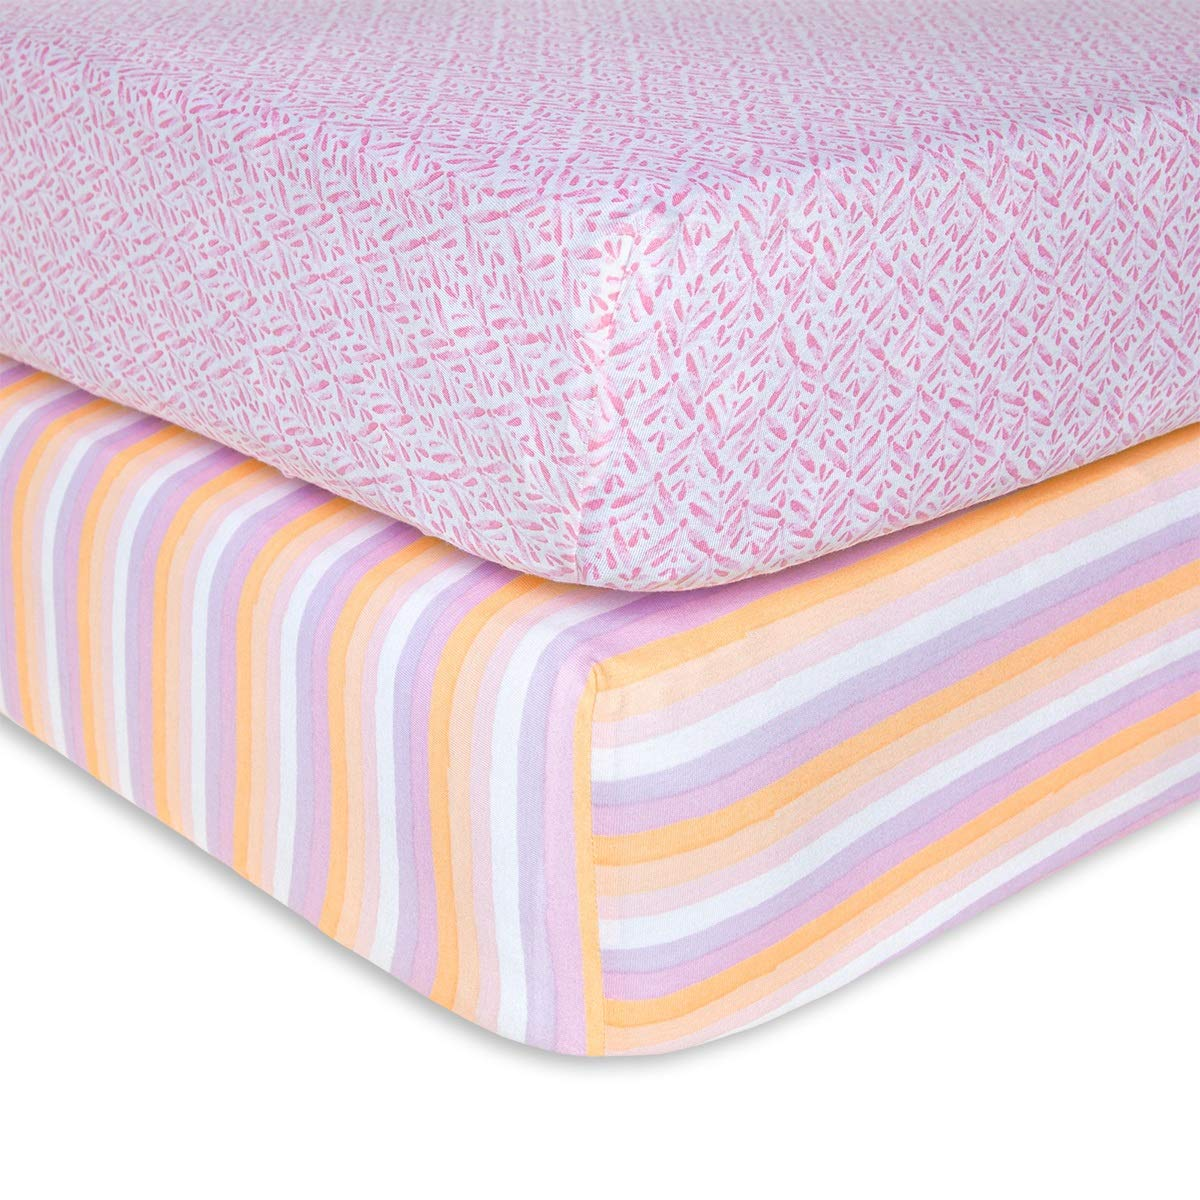 Burt's Bees Baby - Fitted Crib Sheets, 2-Pack, Girls & Unisex 100% Organic Cotton Crib Sheet for Standard Crib and Toddler Mattresses (Sunset Stripe) by Burt's Bees Baby